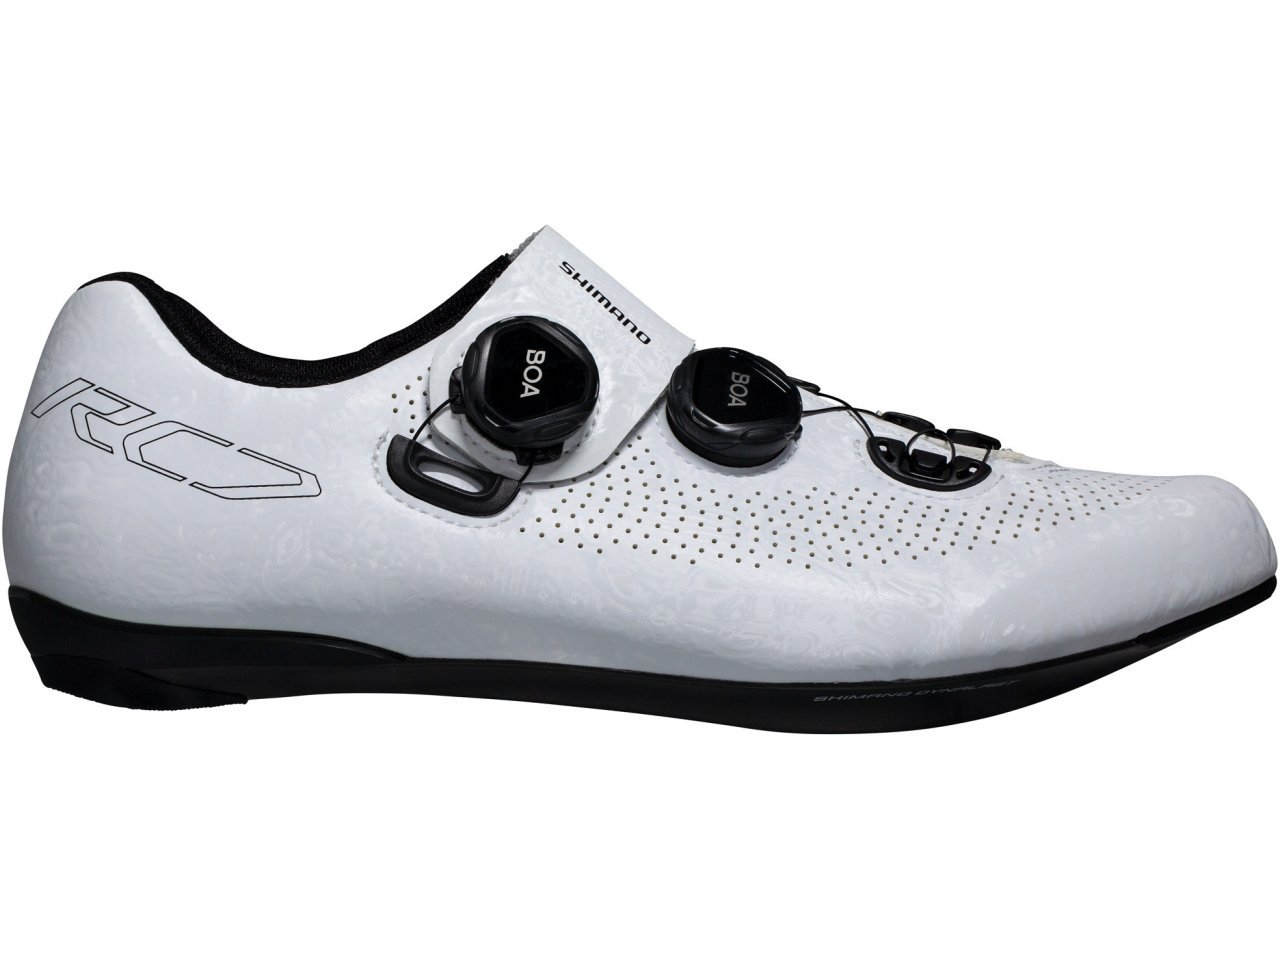 New 2019 Shimano SH-RC701-E Wide Carbon Fiber Road Cycling Shoes White